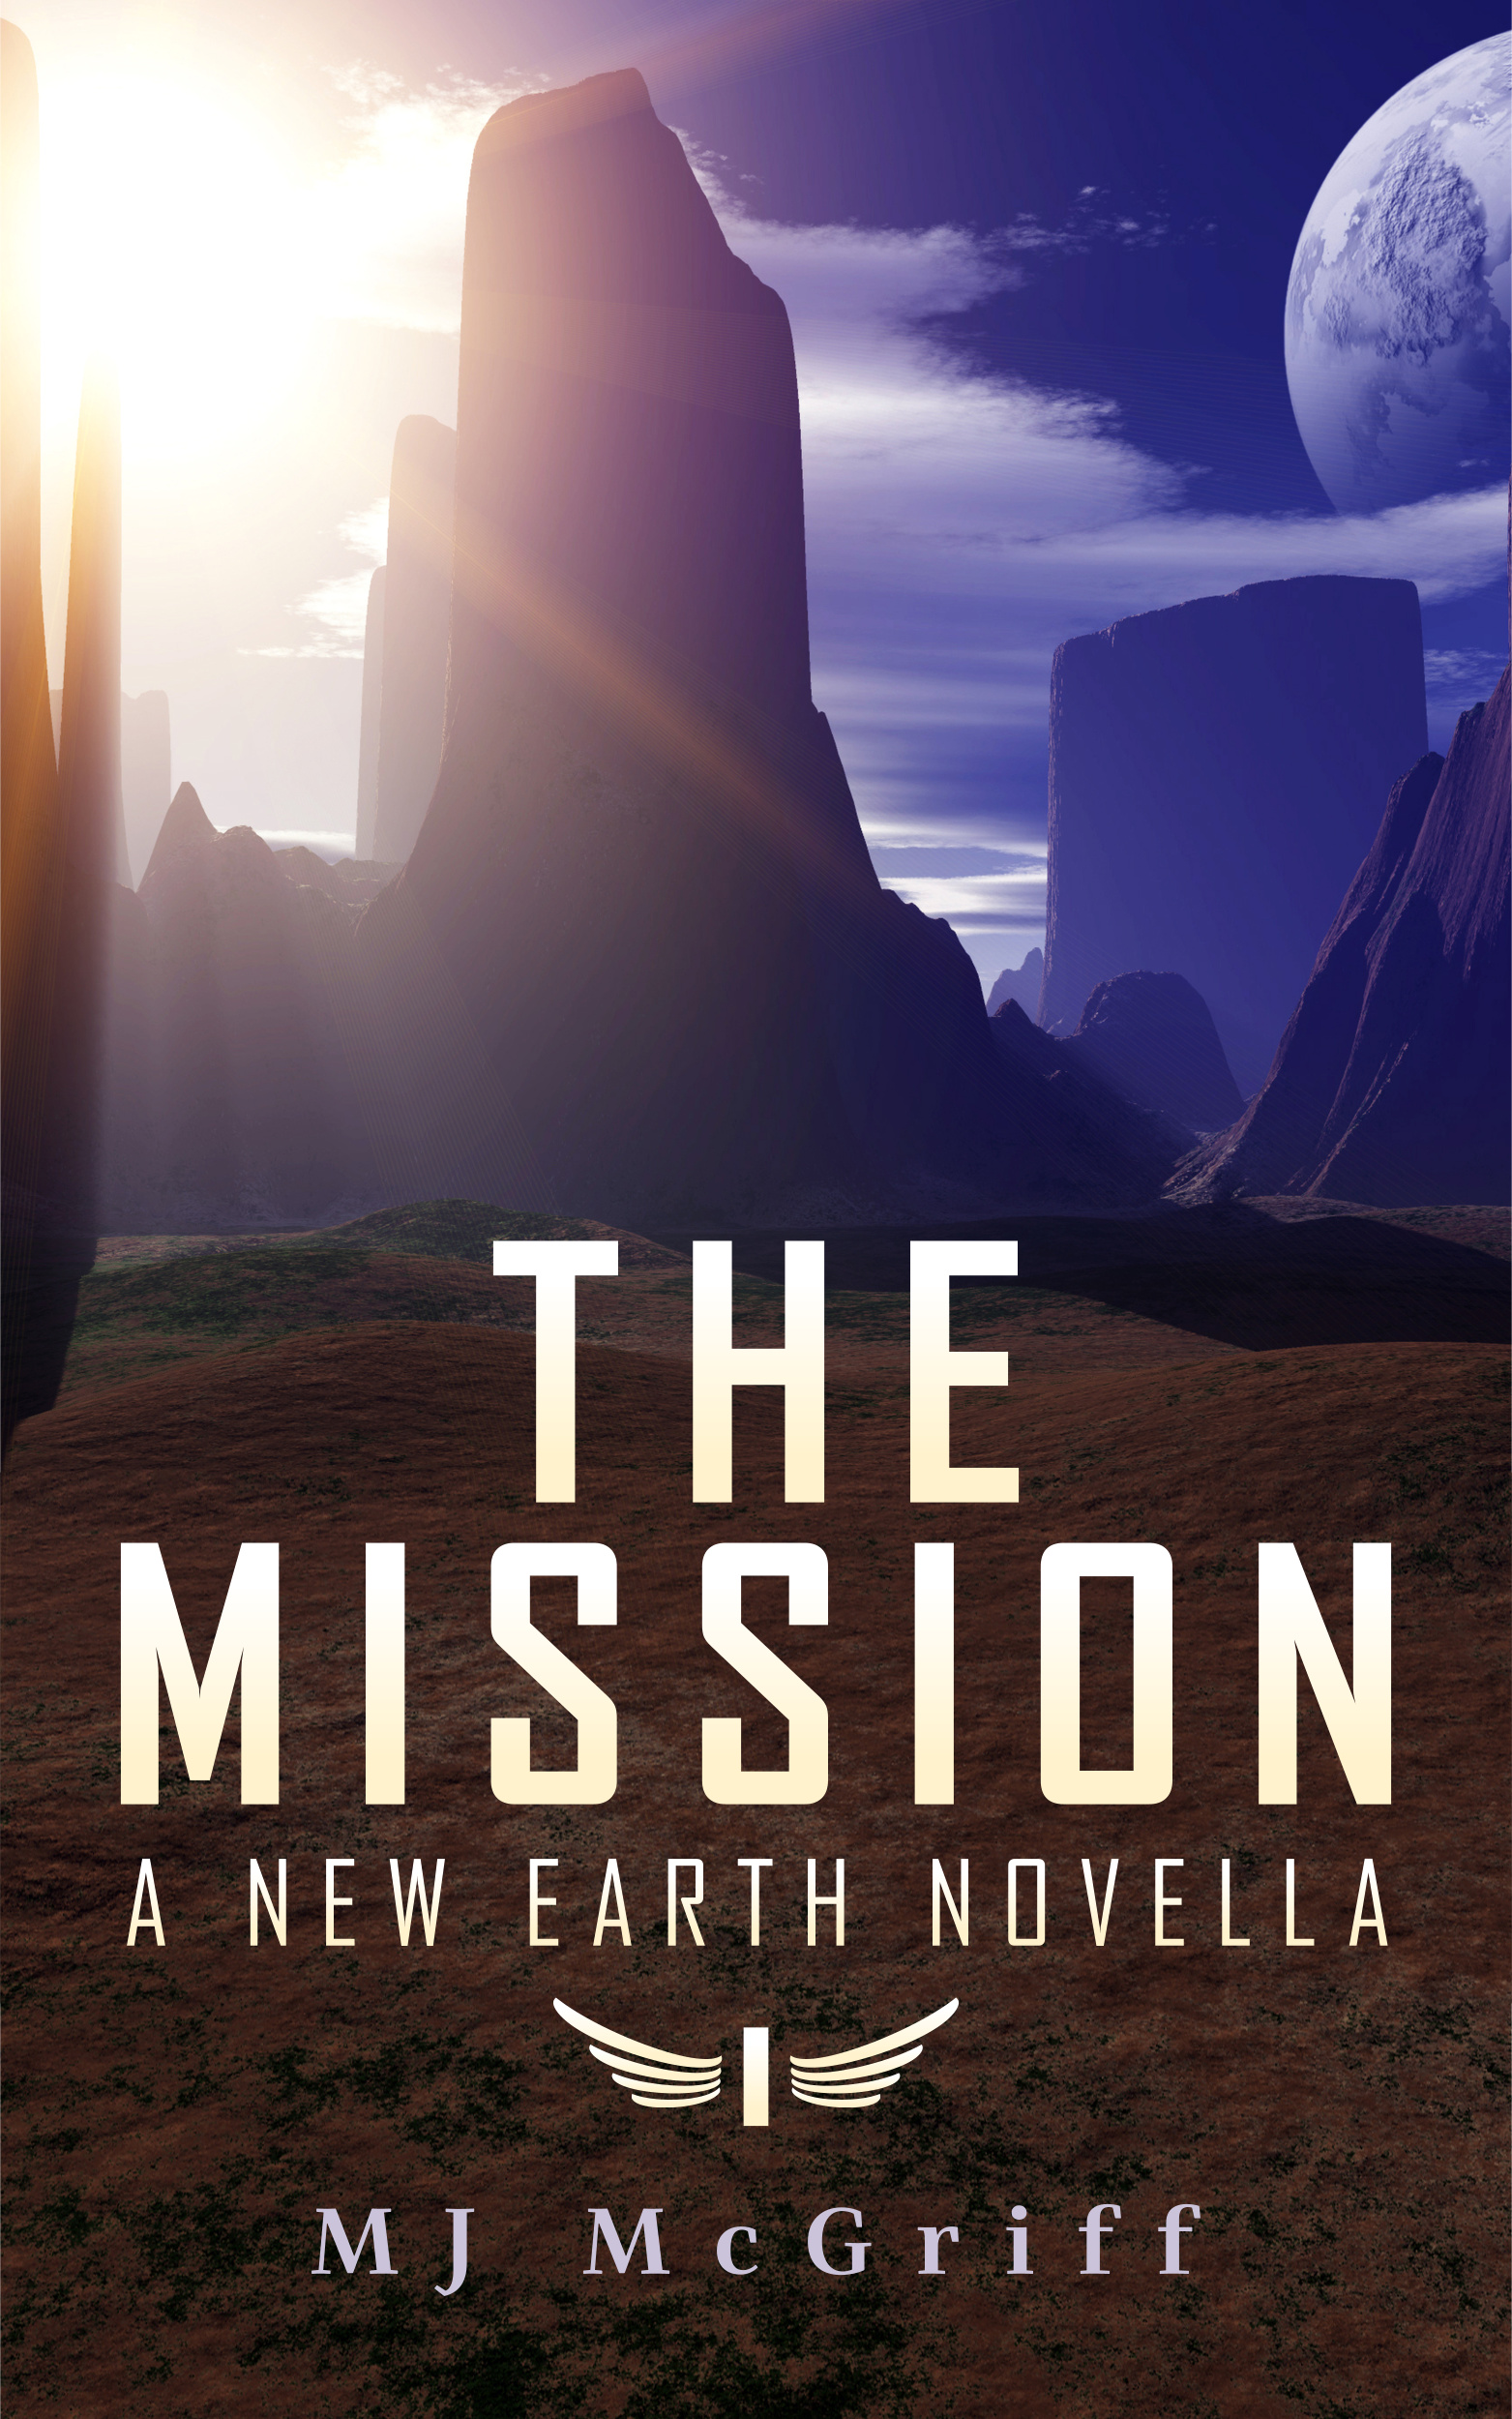 The Mission, a New Earth novella by MJ McGriff